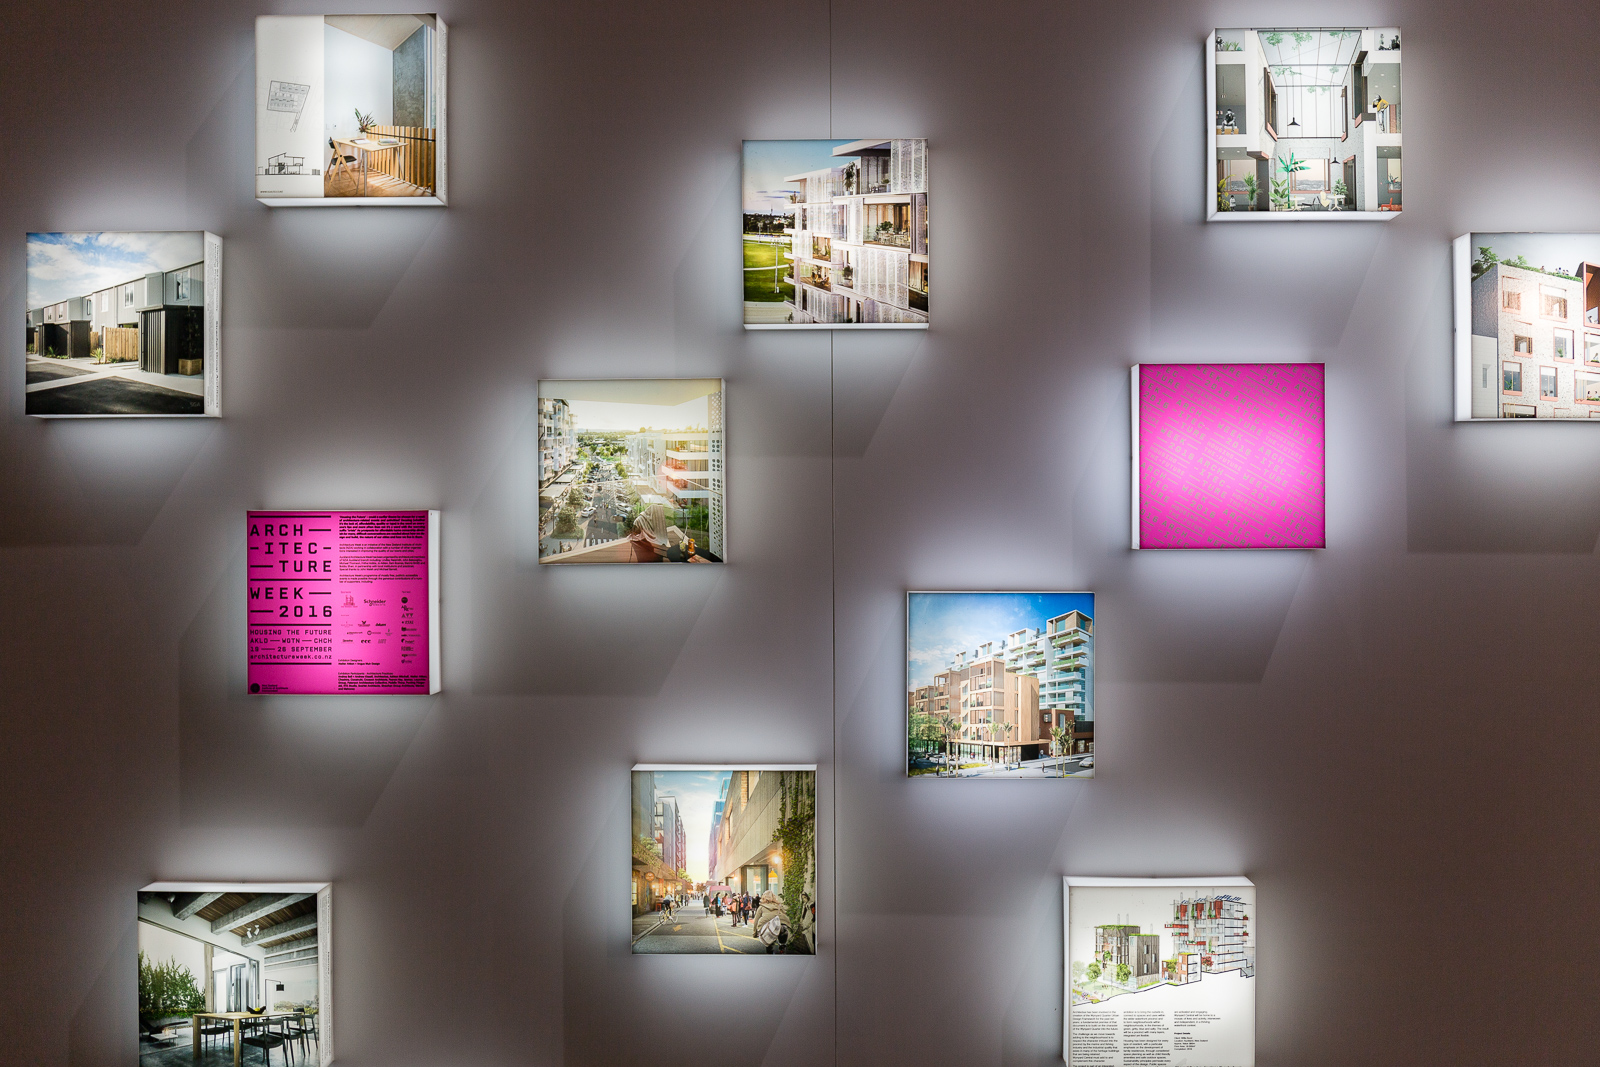 New City Architecture Exhibition - Photo by Joe Hockley